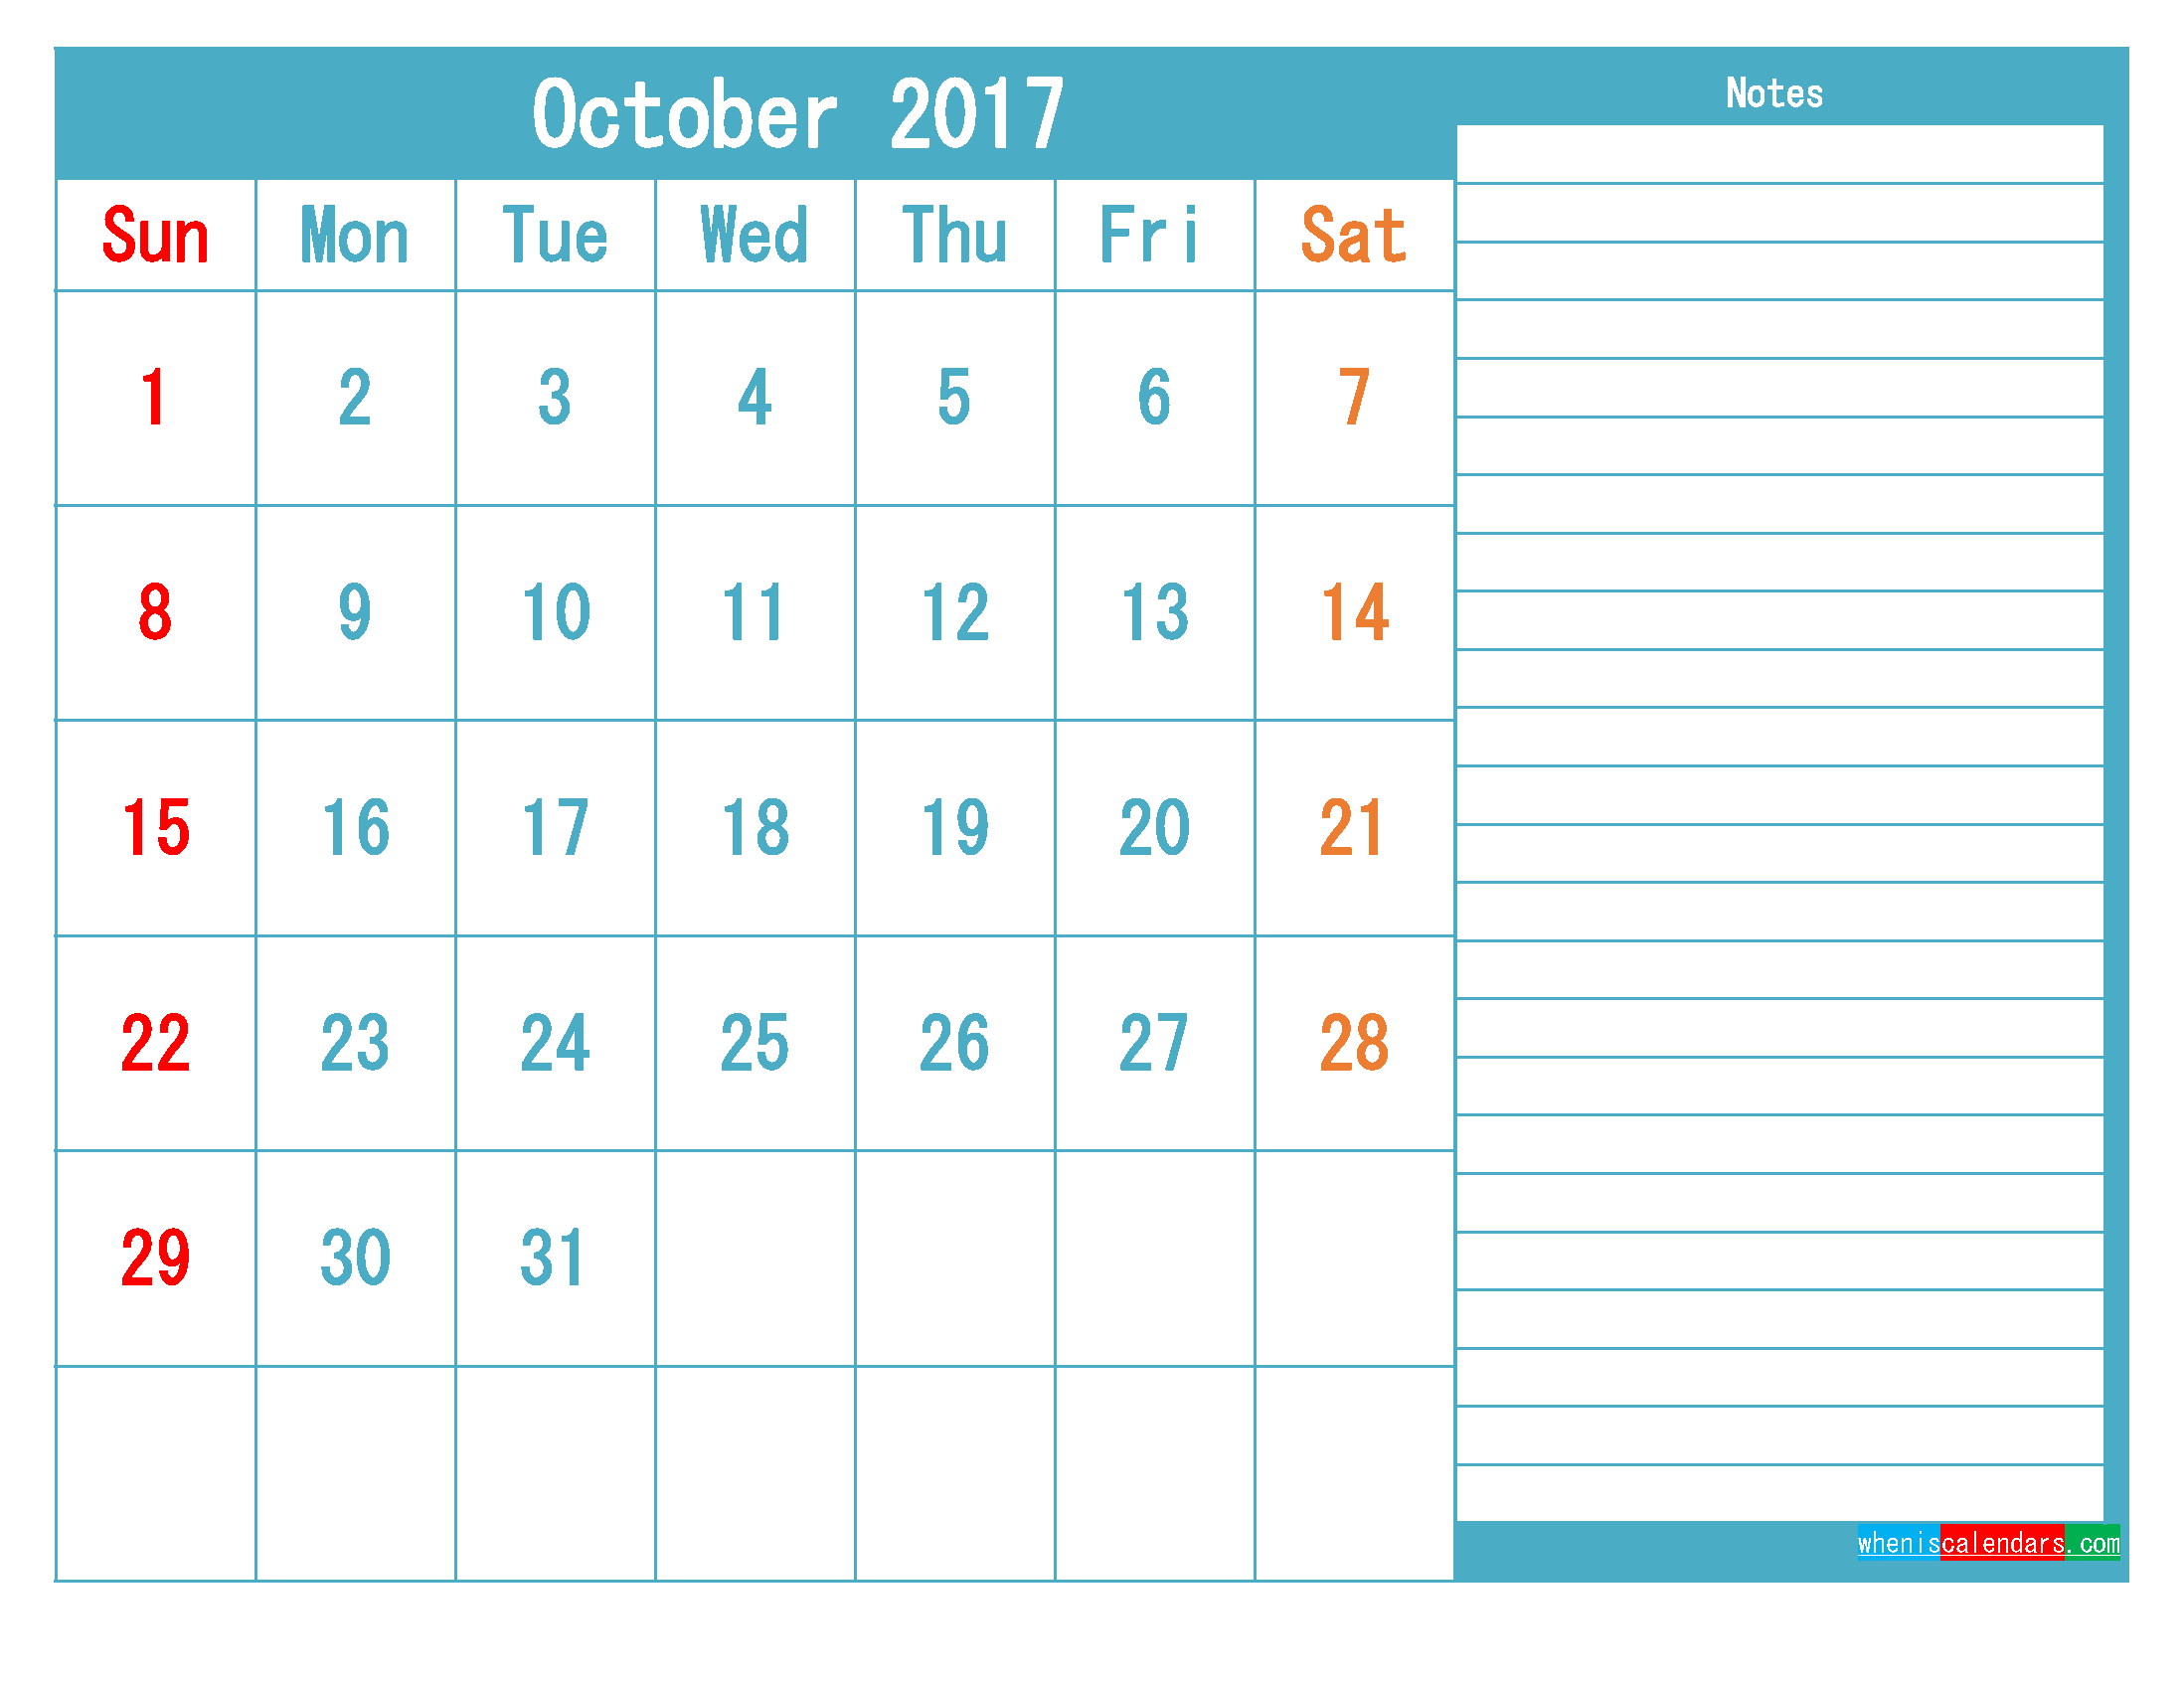 October 2017 Printable Calendar Templates PDF and Image